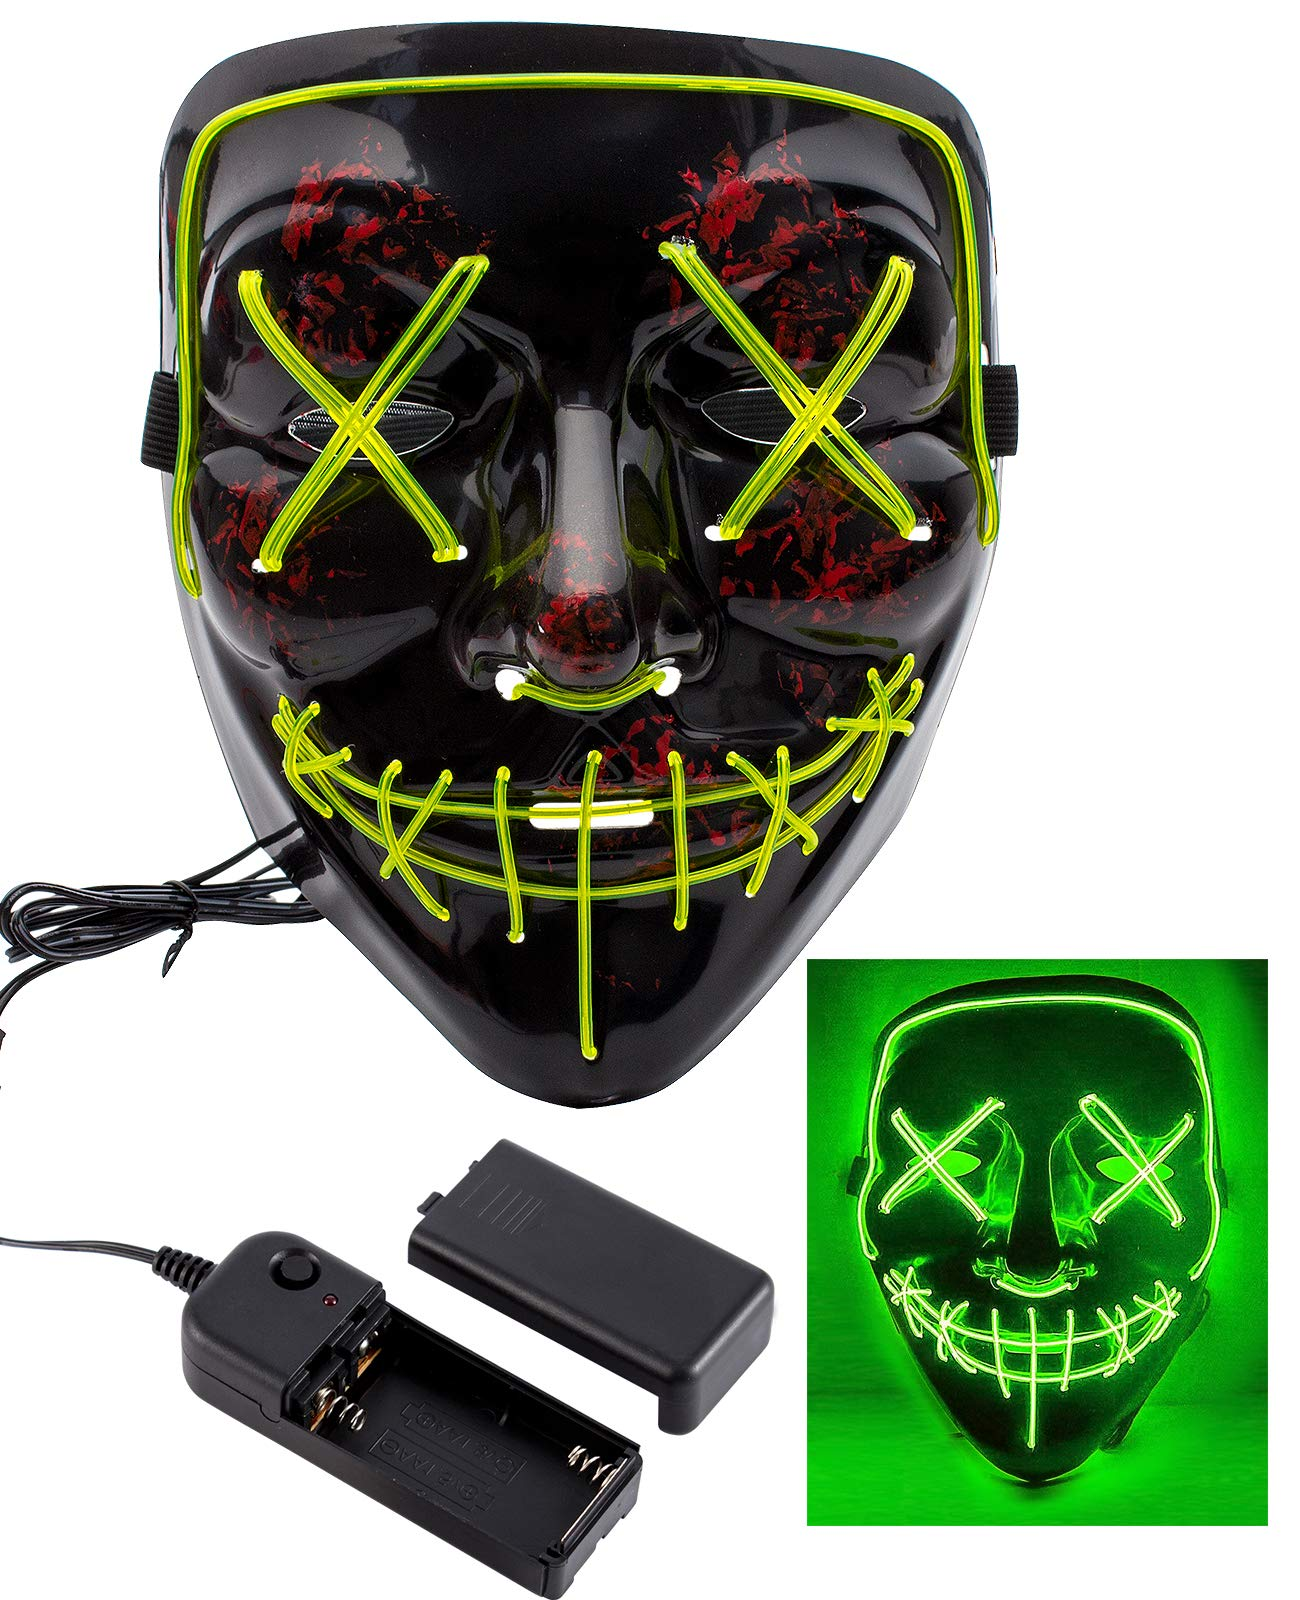 Apipi Halloween LED Light up Mask-Frightening EL Wire Cosplay Mask for Festival Parties(Green)